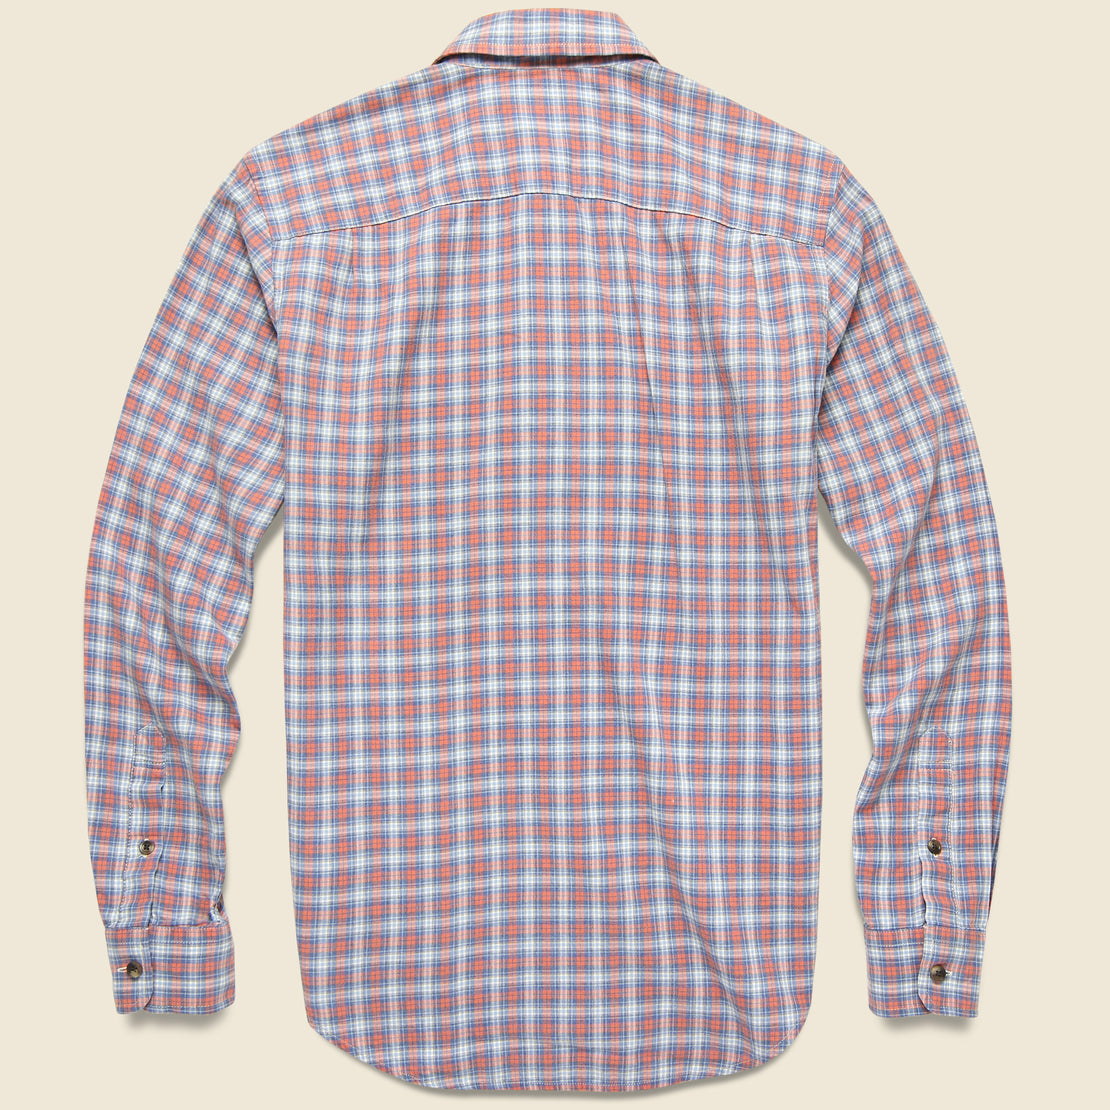 Movement Melange Shirt - Half Moon Bay Plaid